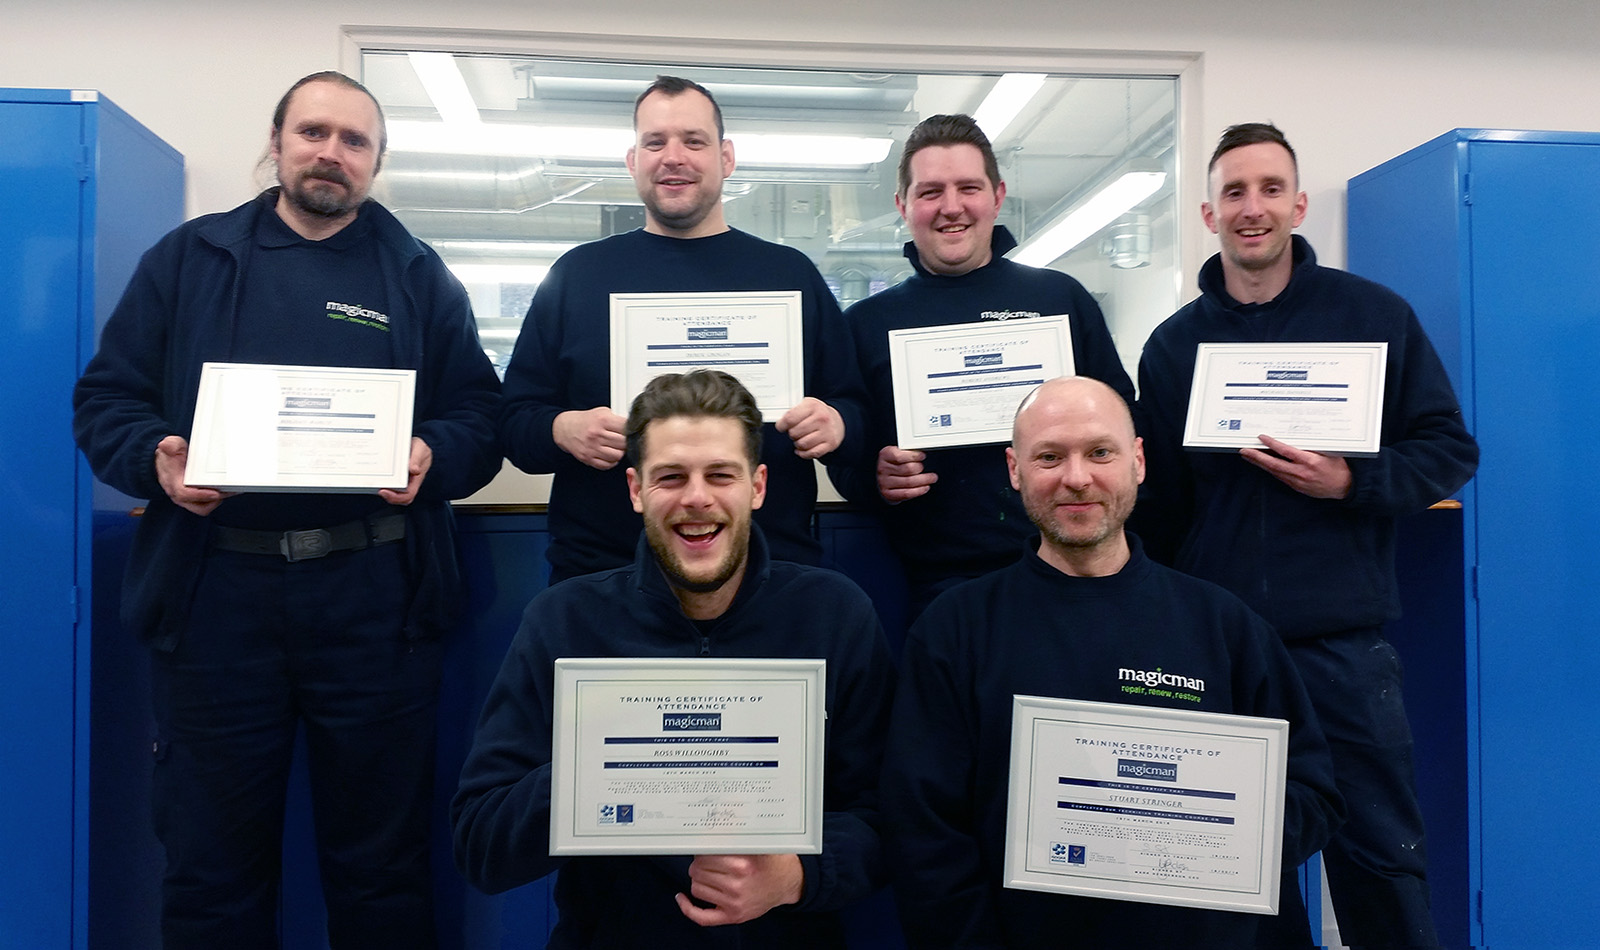 Magicman technicians receive their training certficates